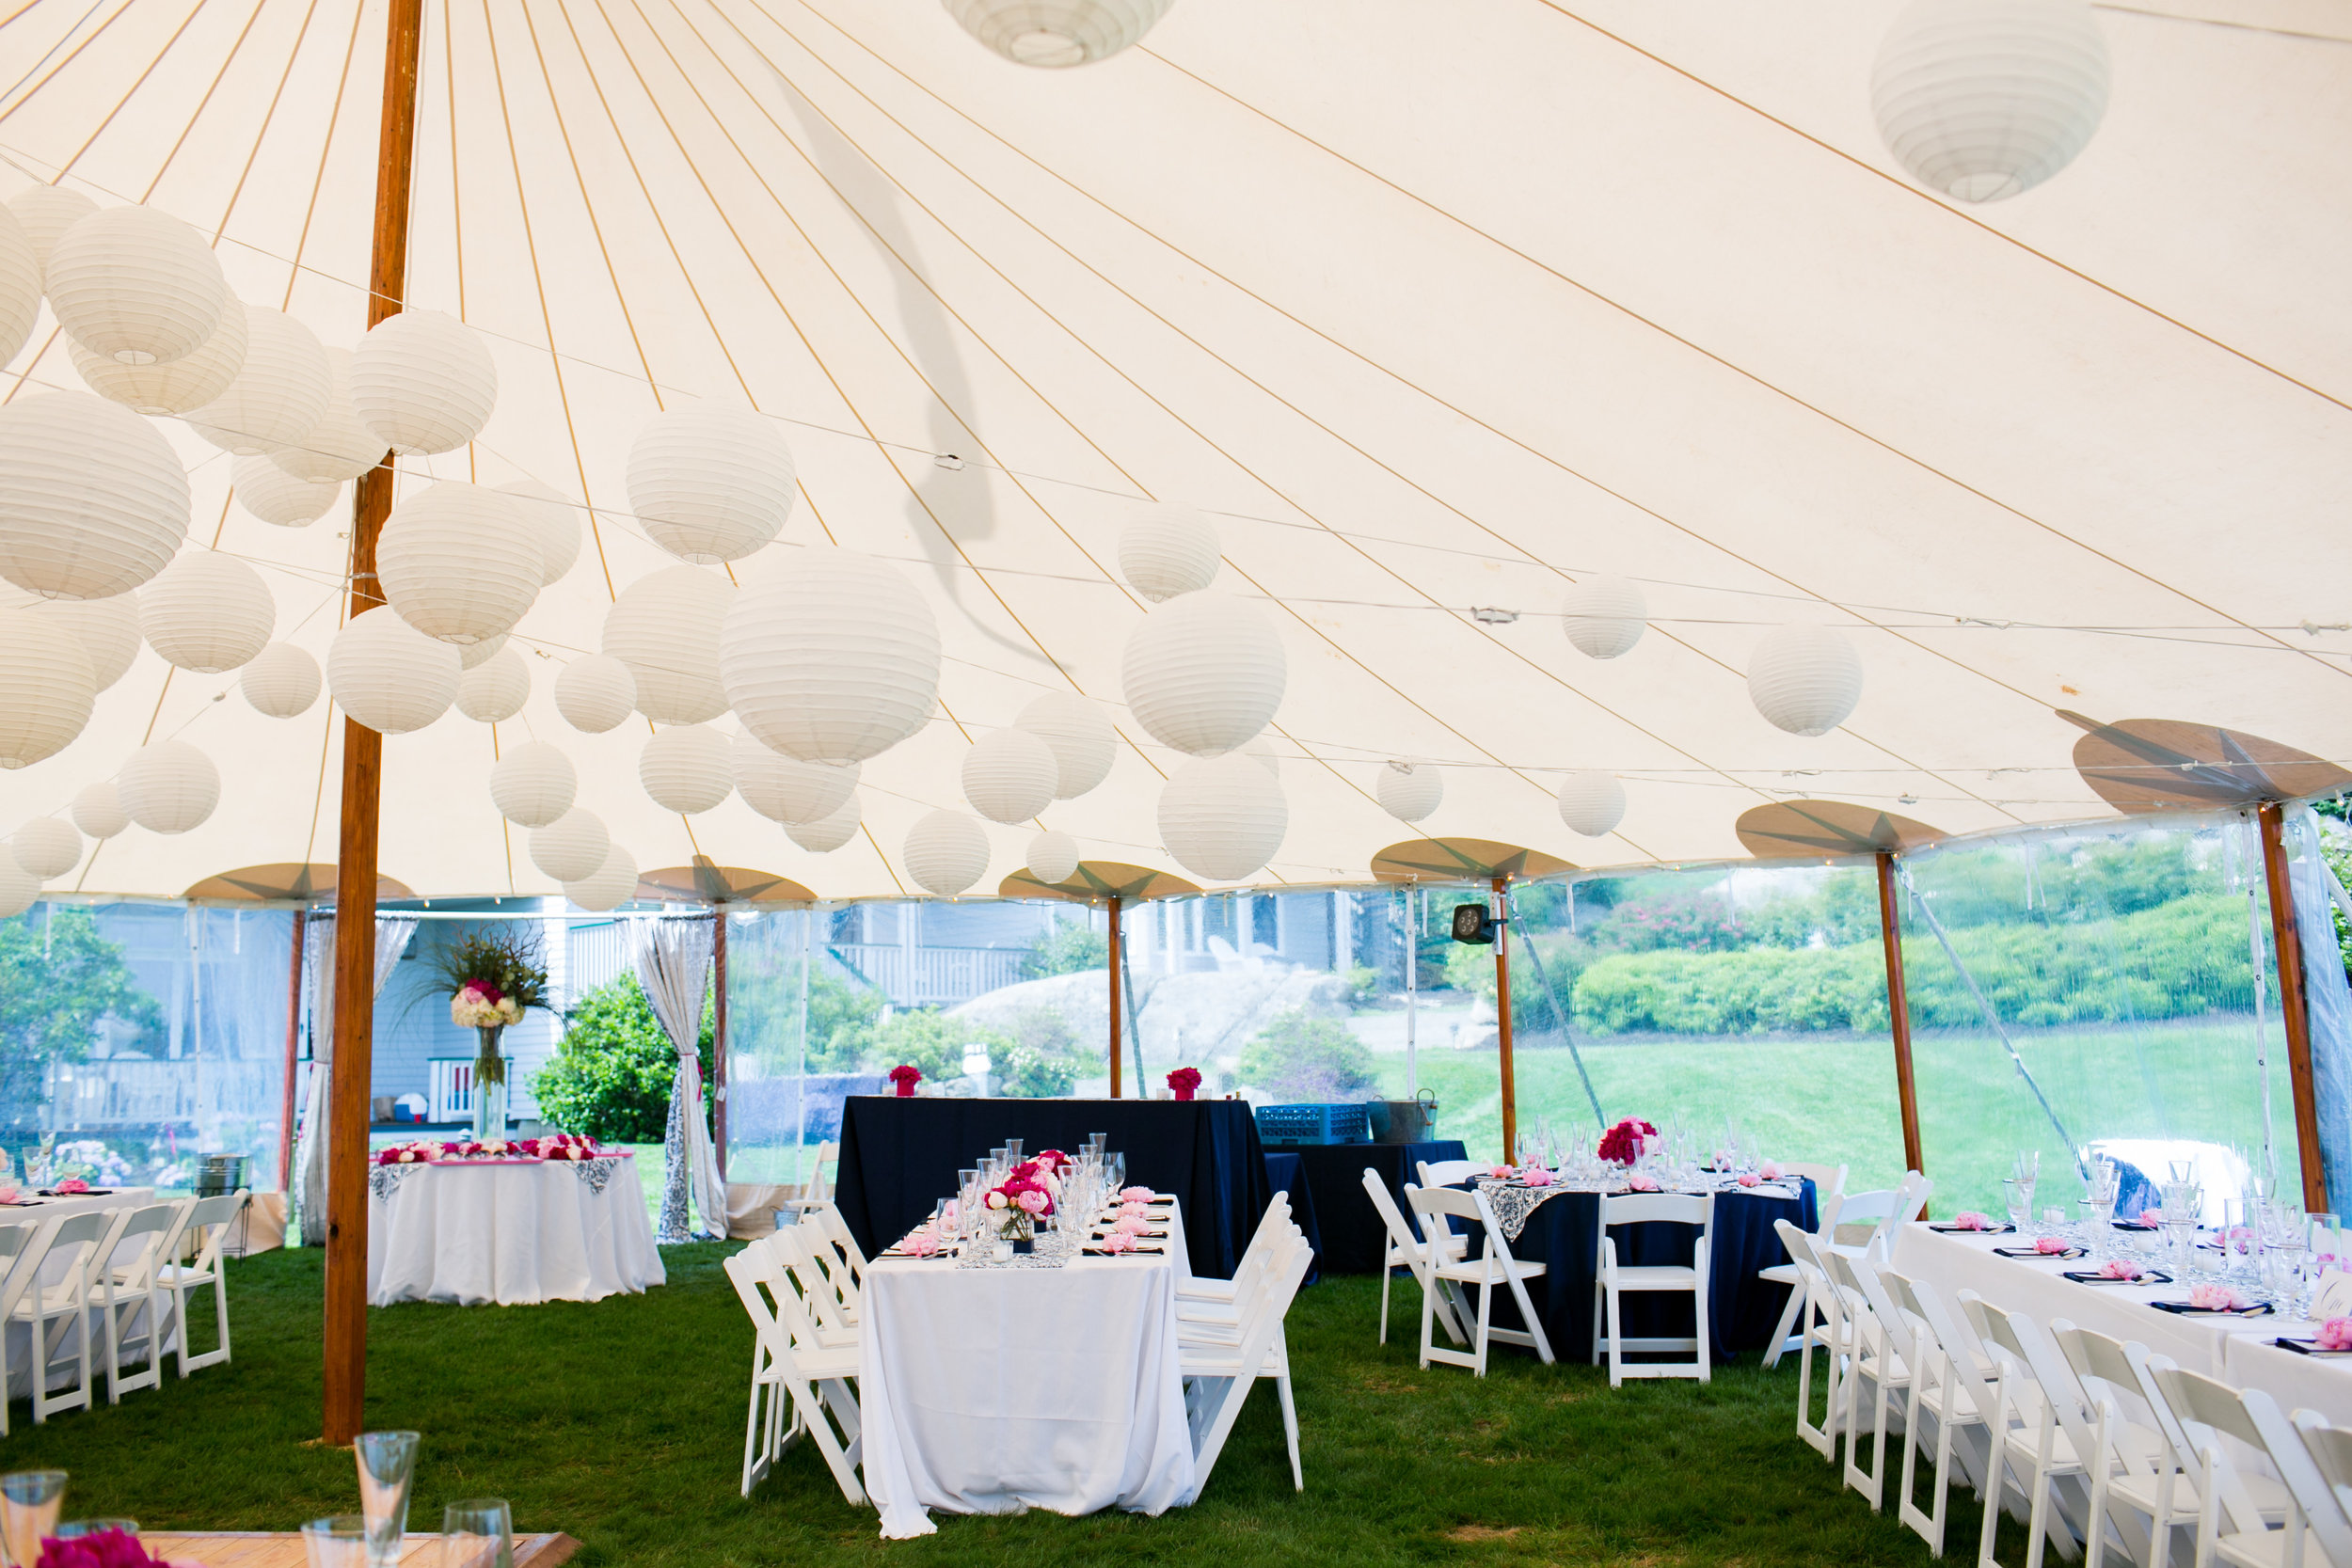 A traditional ocean side tented wedding at the  ViewPoint Hotel  in Maine. Image by  Mark Davidson Photography .